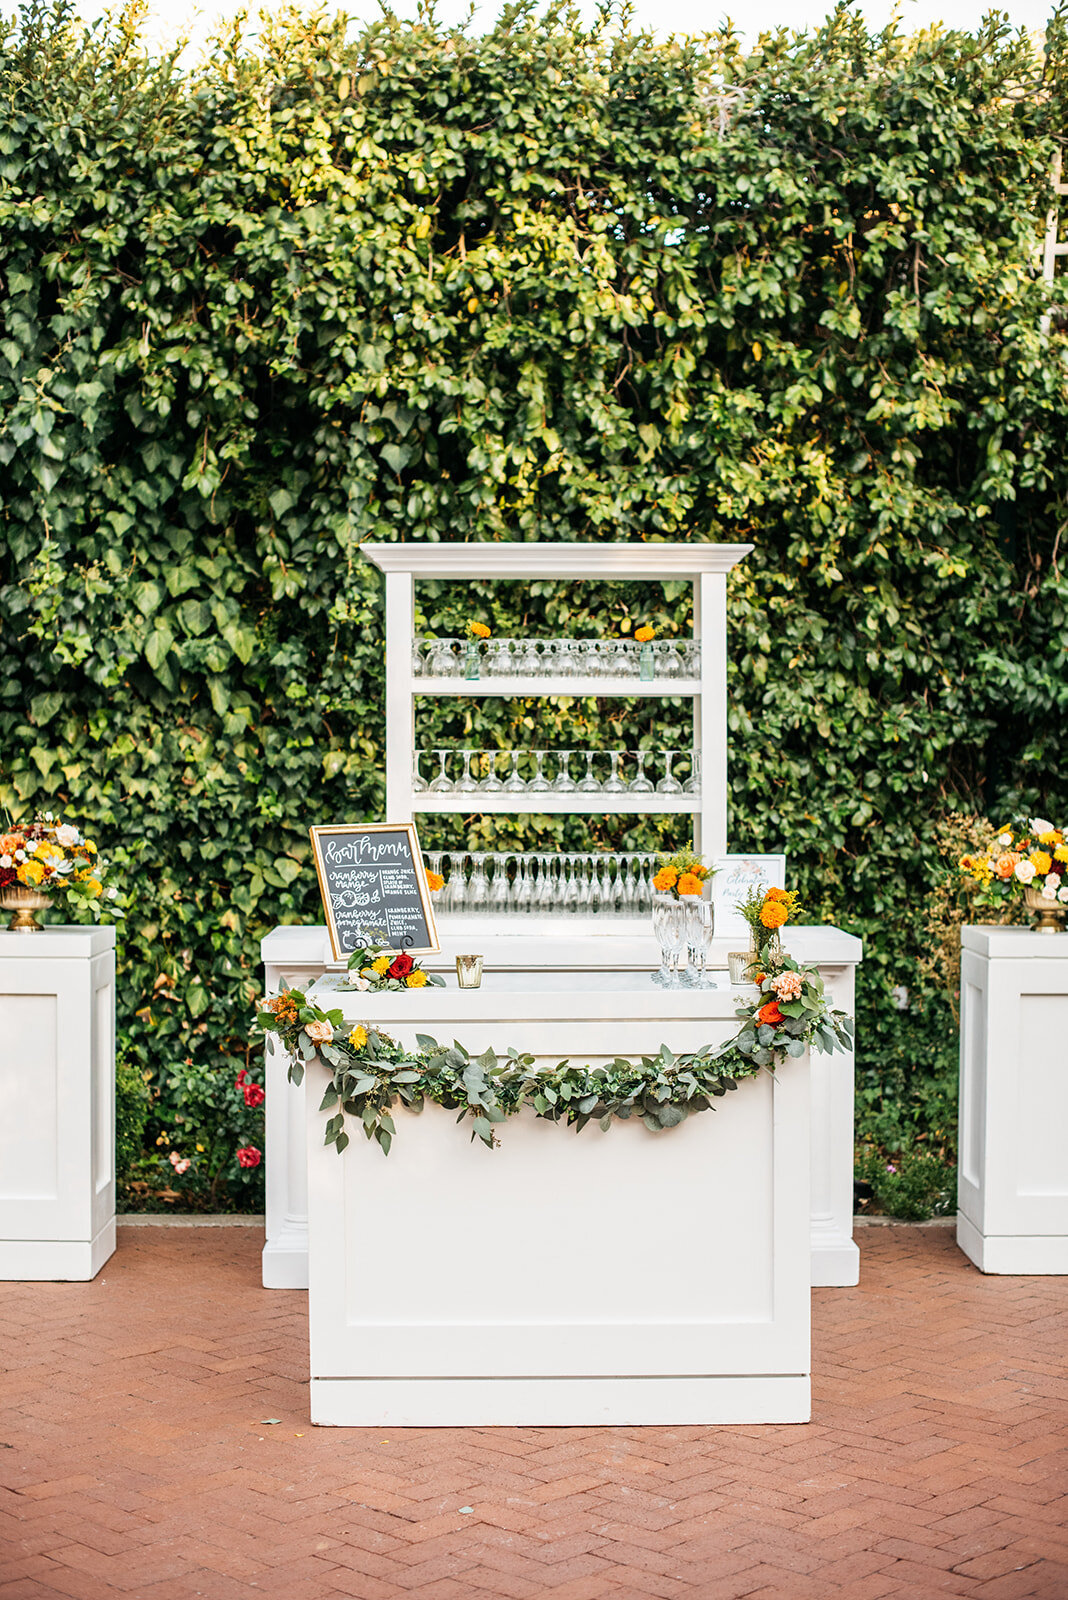 This elegant white bar display is the perfect addition to the cascading ivy wall in the Gardens Courtyard.